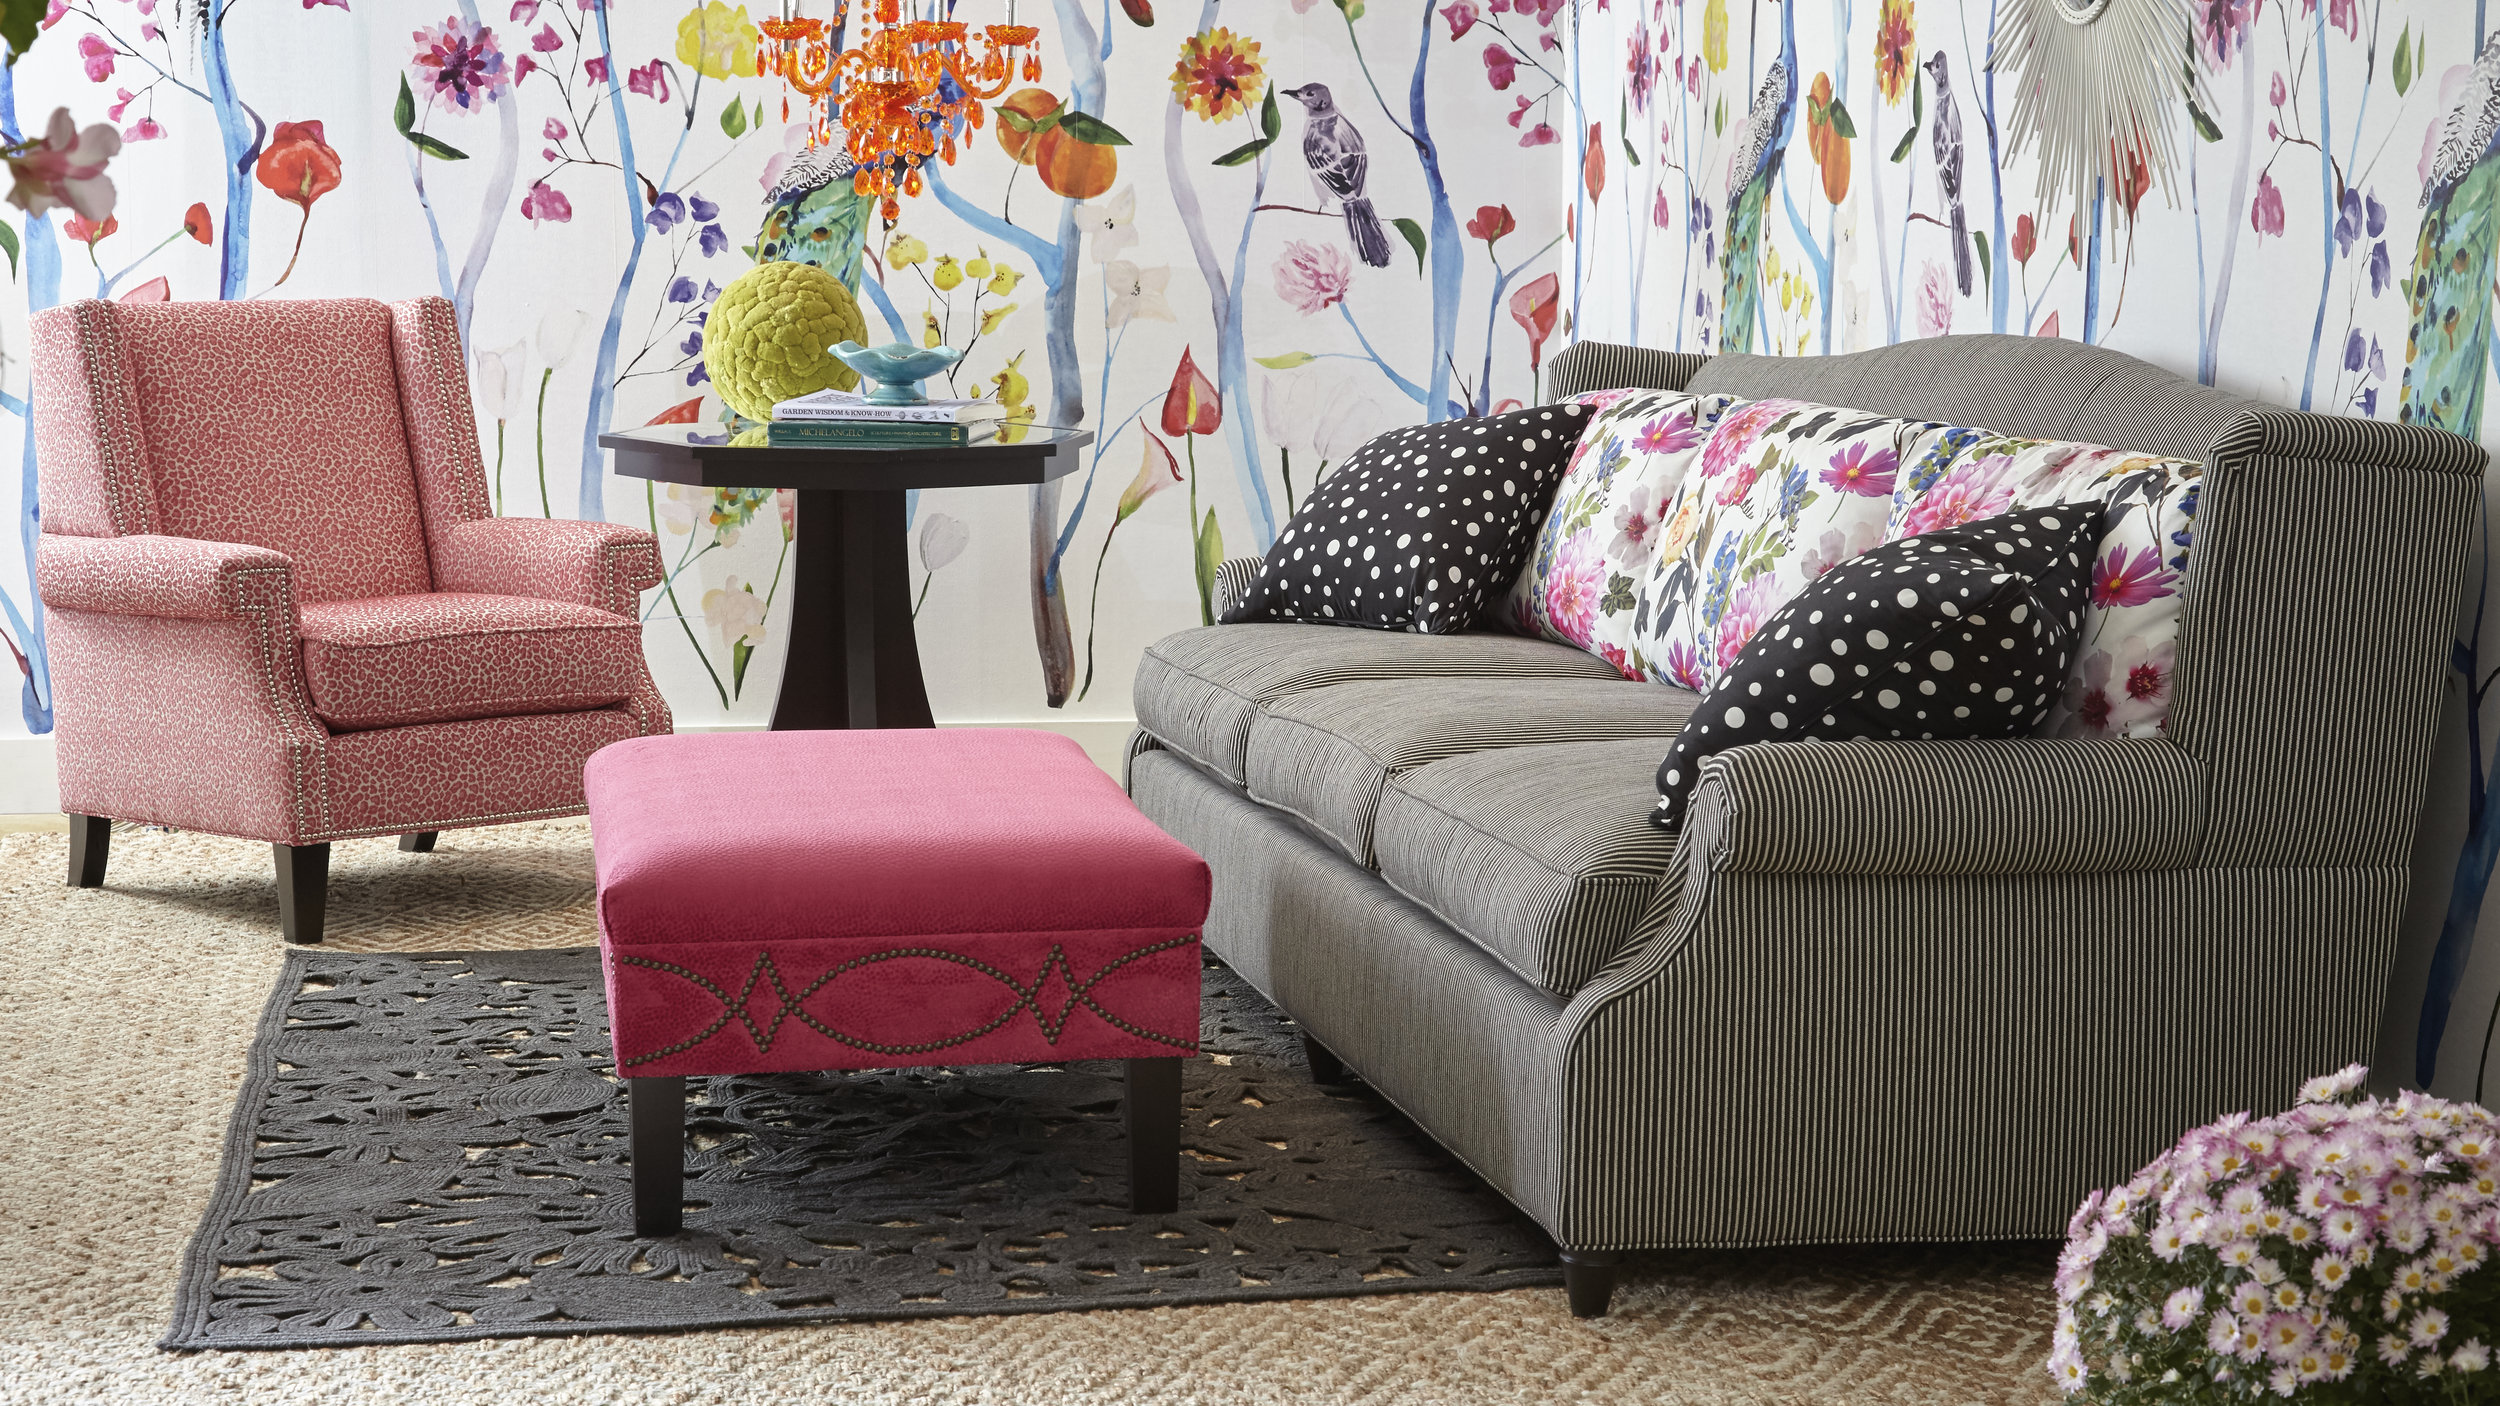 The Home Furnishing Process: Make It Your Own